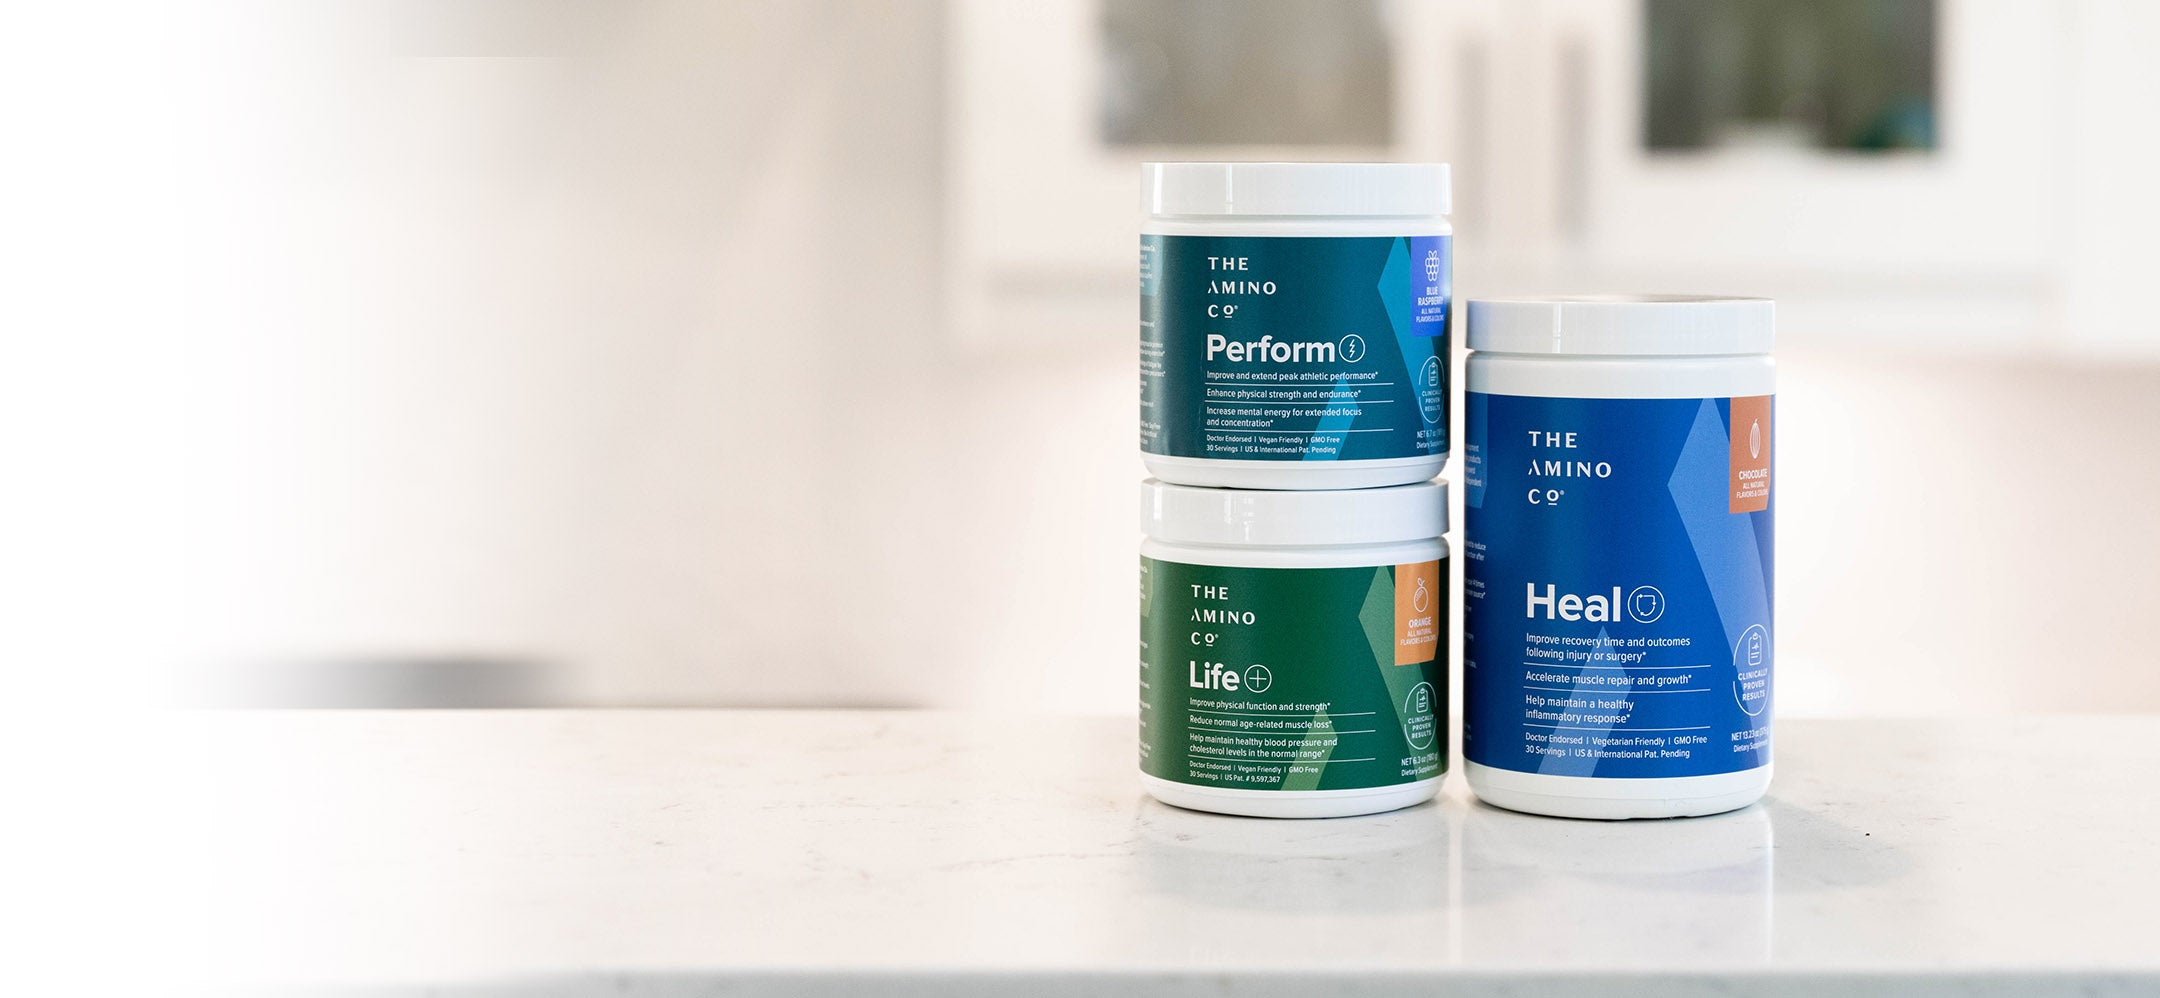 Amino company products can help maintain heart and muscle health, help you recover from surgery faster, and help you reach your athletic peak.